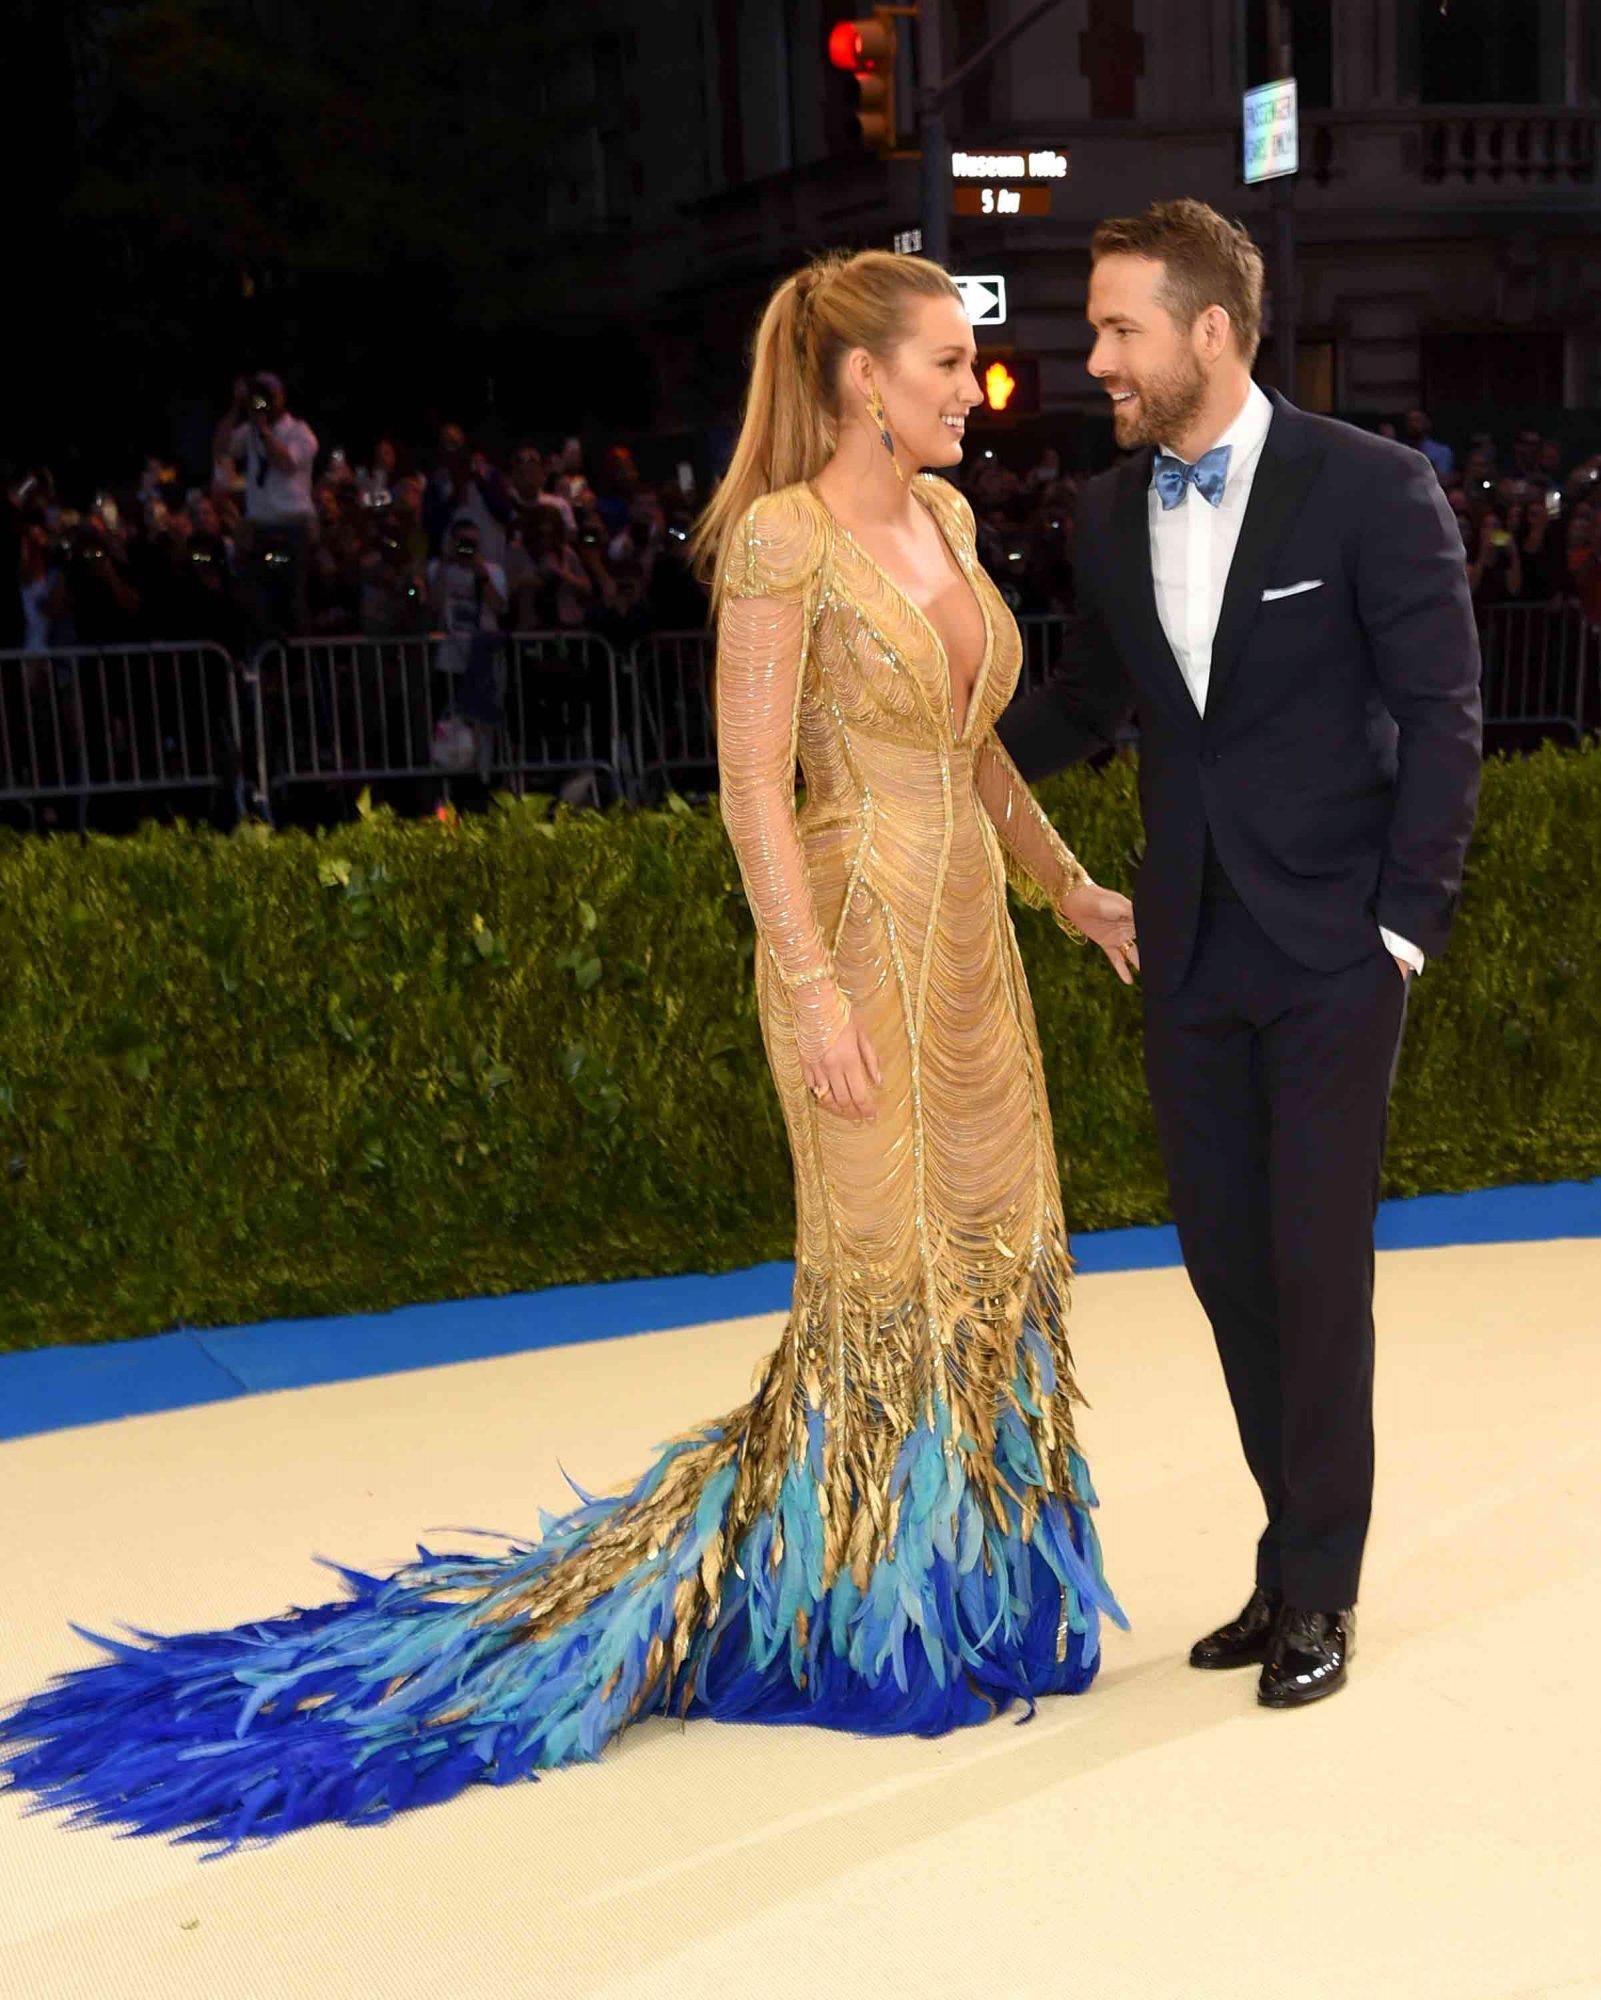 Blake-Lively-Ryan-Reynolds.jpg